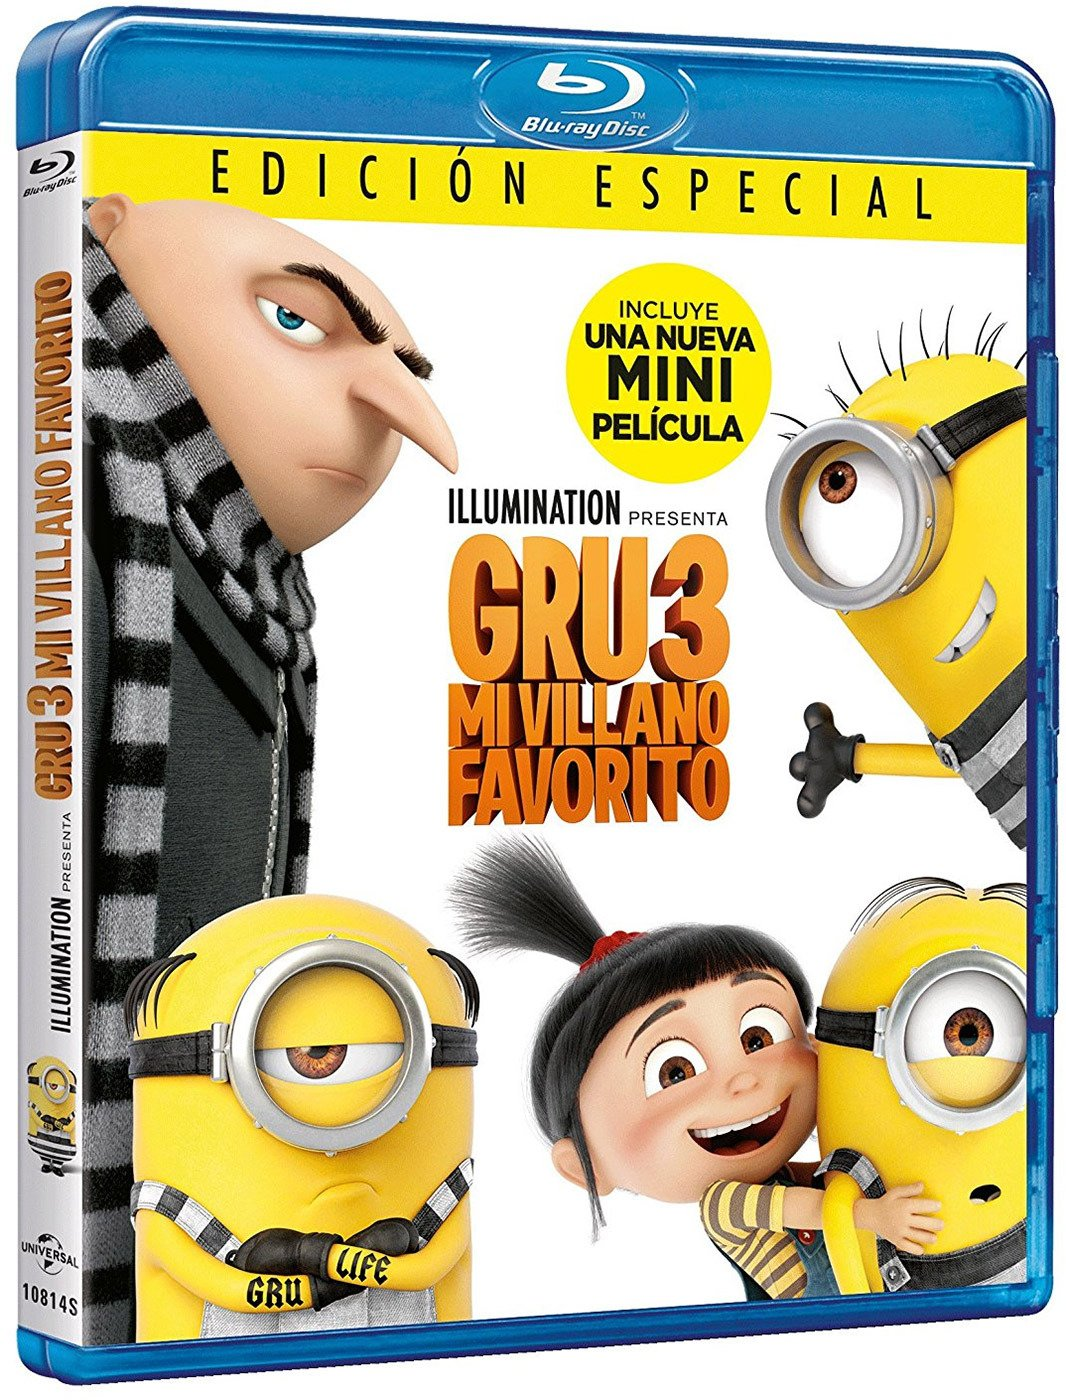 Gru 3: Mi Villano Favorito [Blu-ray]